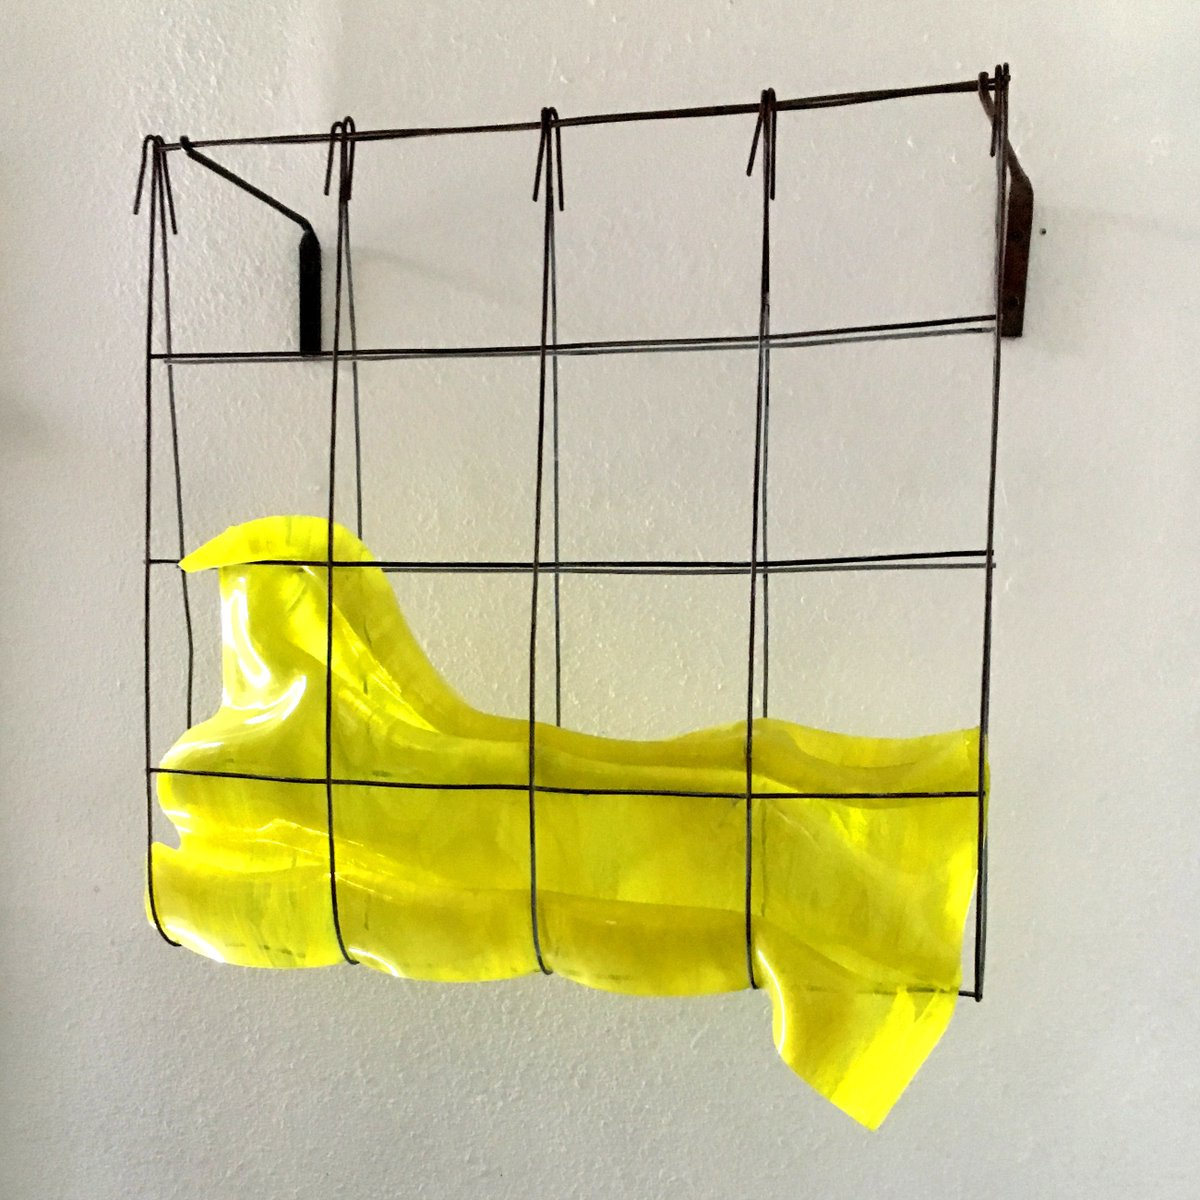 "Mary Schaffer ""Yellow Field"" 2016 Slumped glass & metal 24 x 24 x 9 in. ⁠ ⁠ Contact the gallery for pricing.⁠ info@habatat.com ⁠ 248.554.0590⁠ ⁠ ⁠ #glassart #glassgallery #habatatgalleries #glasssculpture #habatat #glassartist #glass48 #glasswork #artgallery https://t.co/d8Cvof3efE"